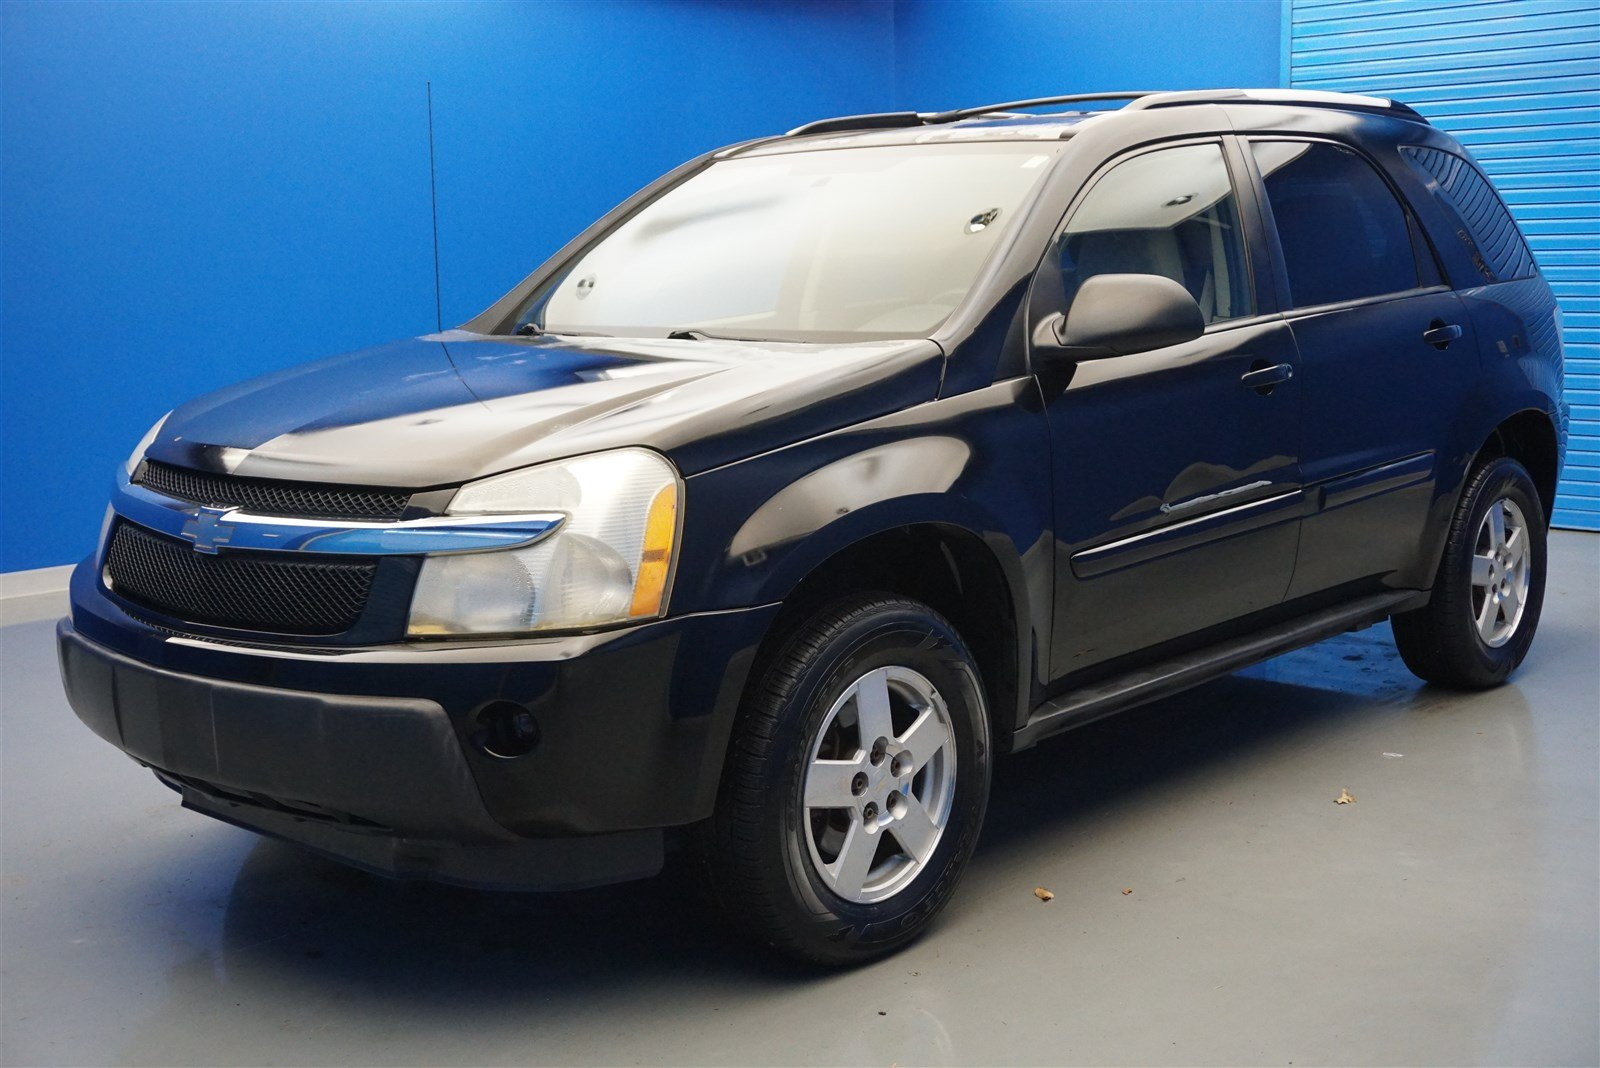 Equinox 2005 chevrolet equinox for sale : Pre-Owned 2005 Chevrolet Equinox LT Sport Utility in Louisville ...